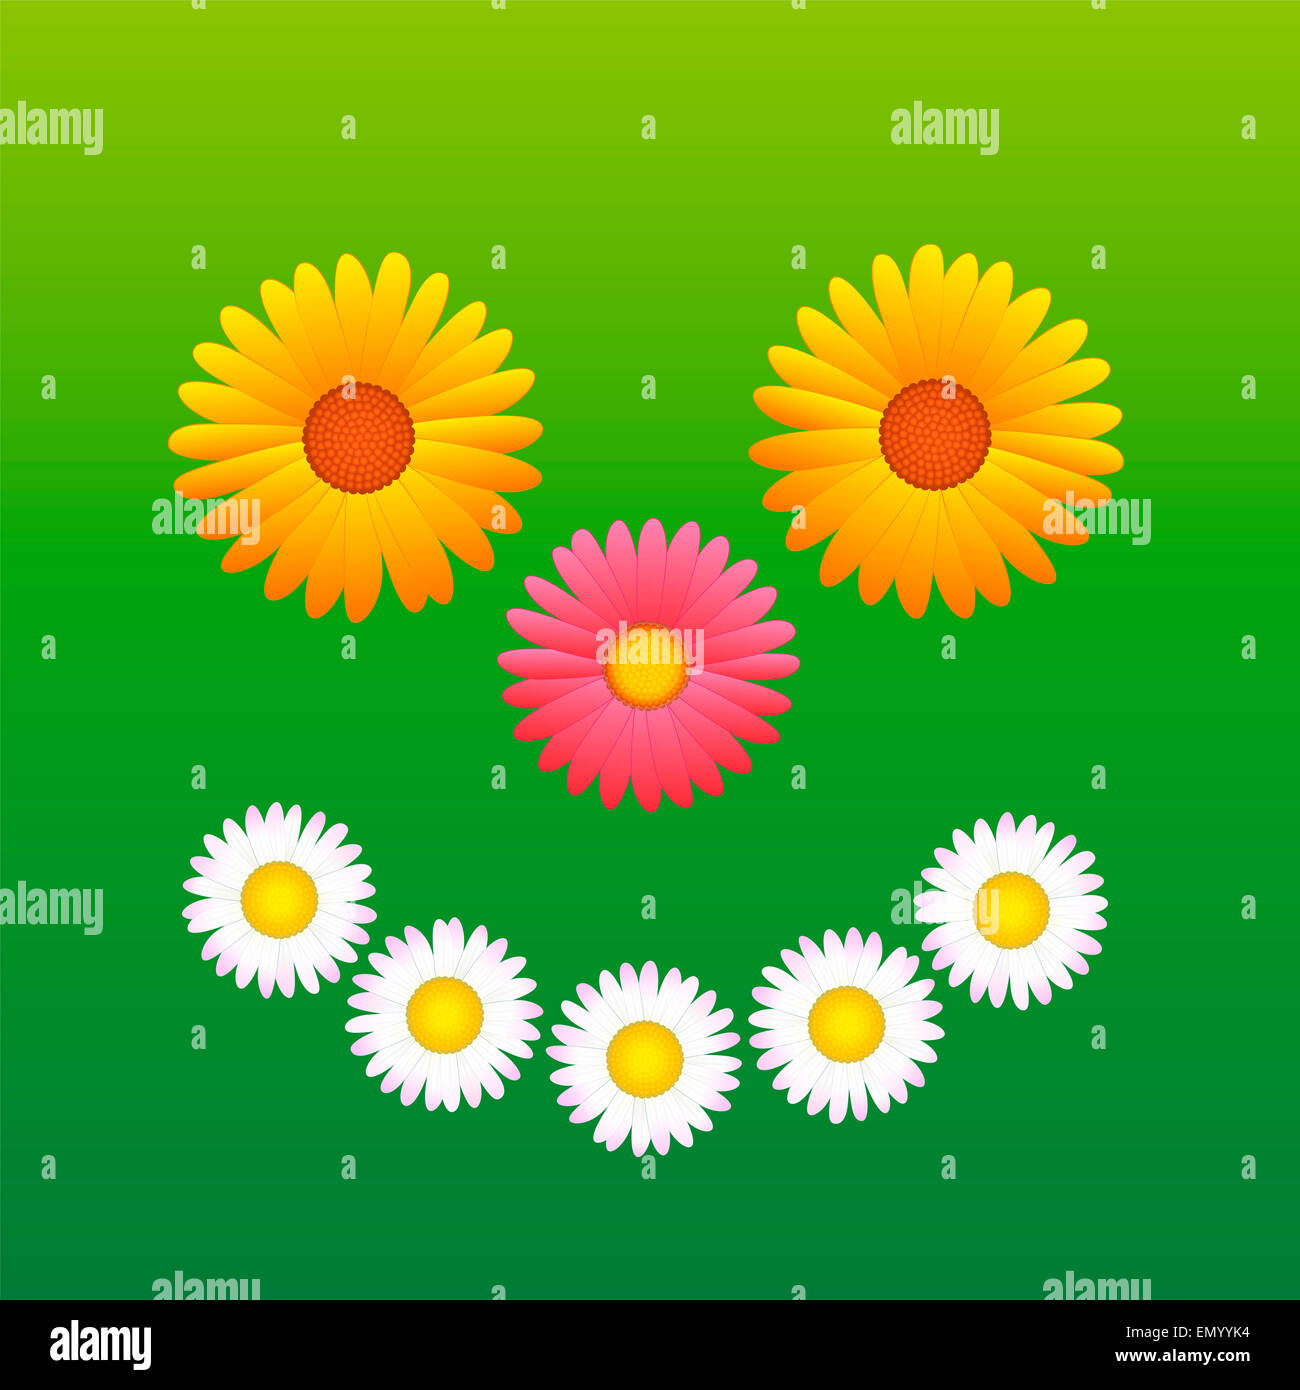 Daisy smiley face stock photos daisy smiley face stock images alamy flowers daisy aster marguerite that form a sunny smiling face izmirmasajfo